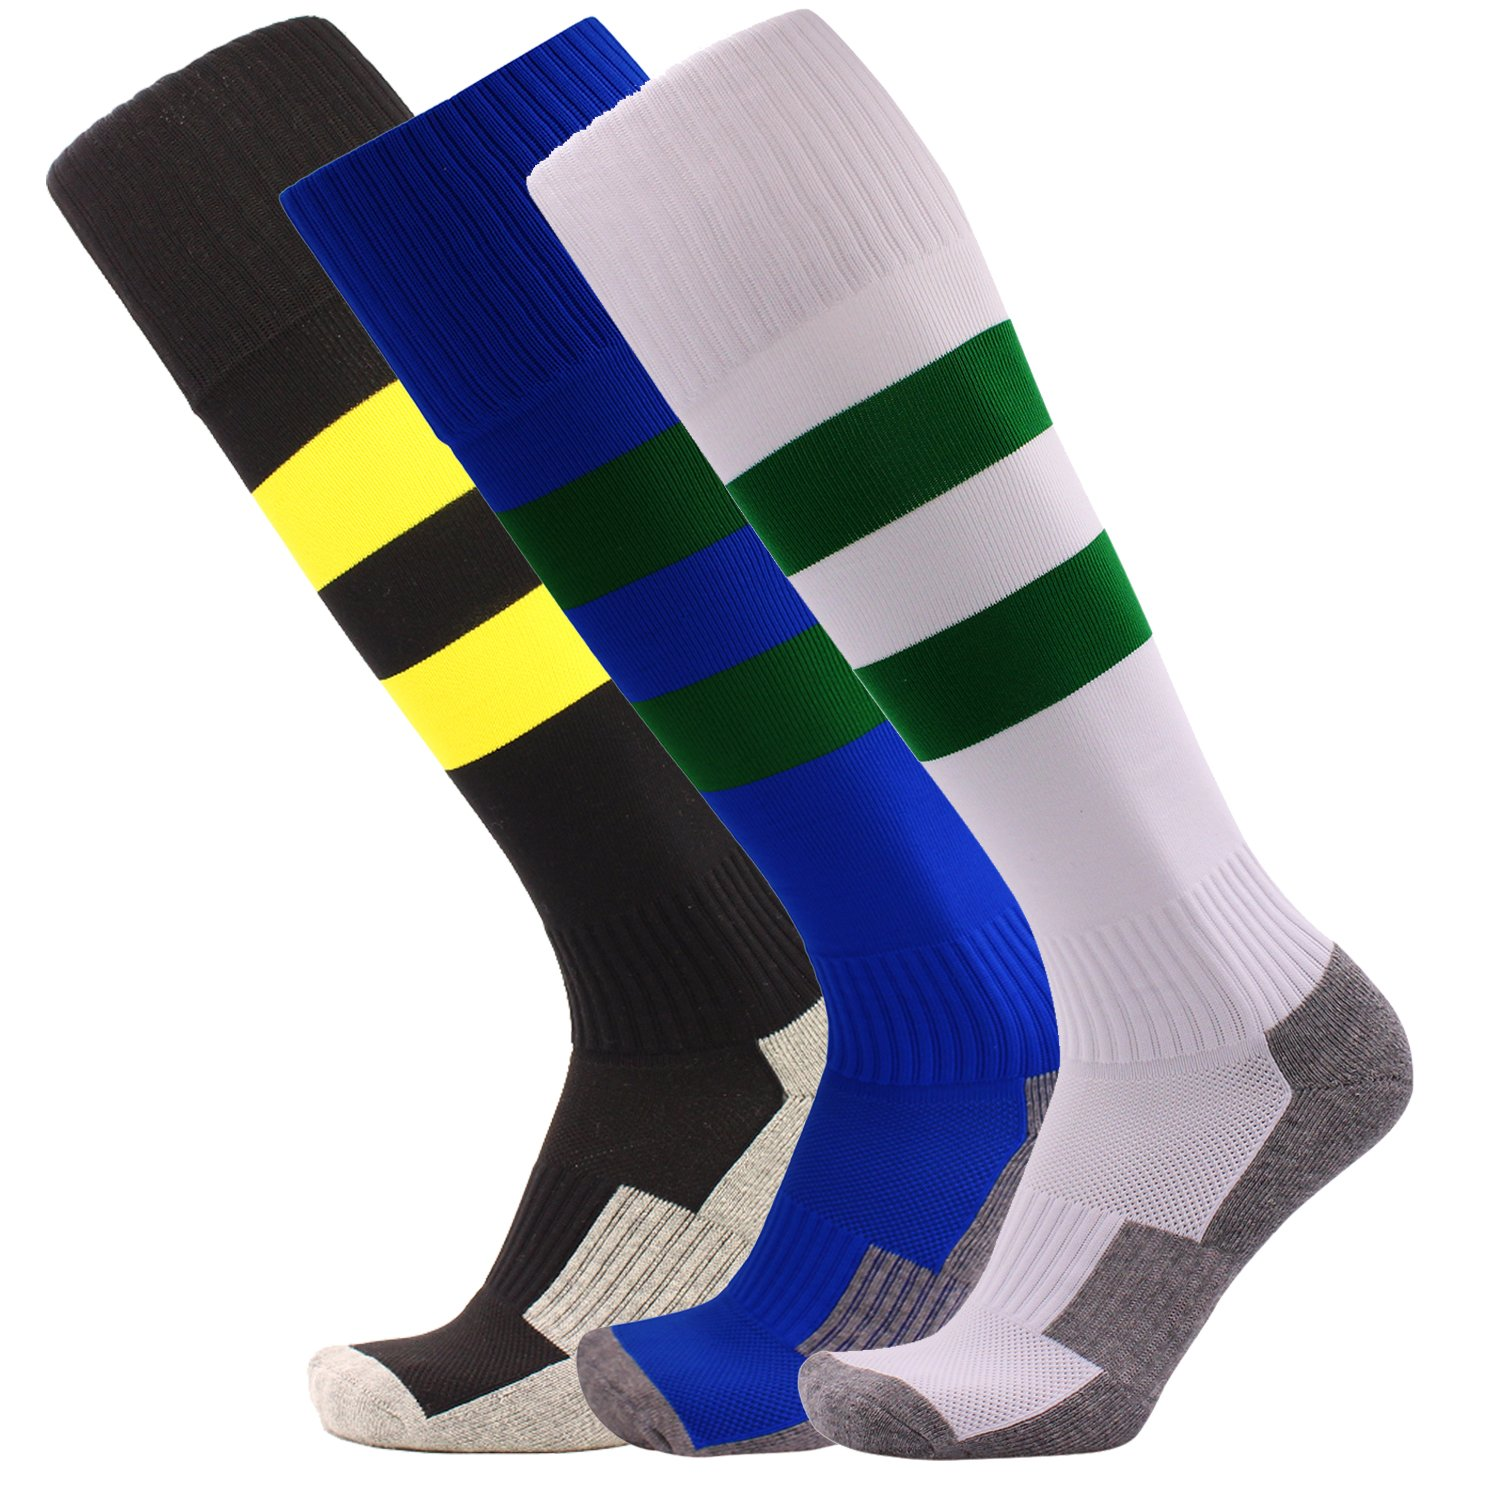 Big Kid Soccer Socks 3 Pack Stripe Compression Football Socks Youth (Black + White + Royal Blue) by KALAKIDS